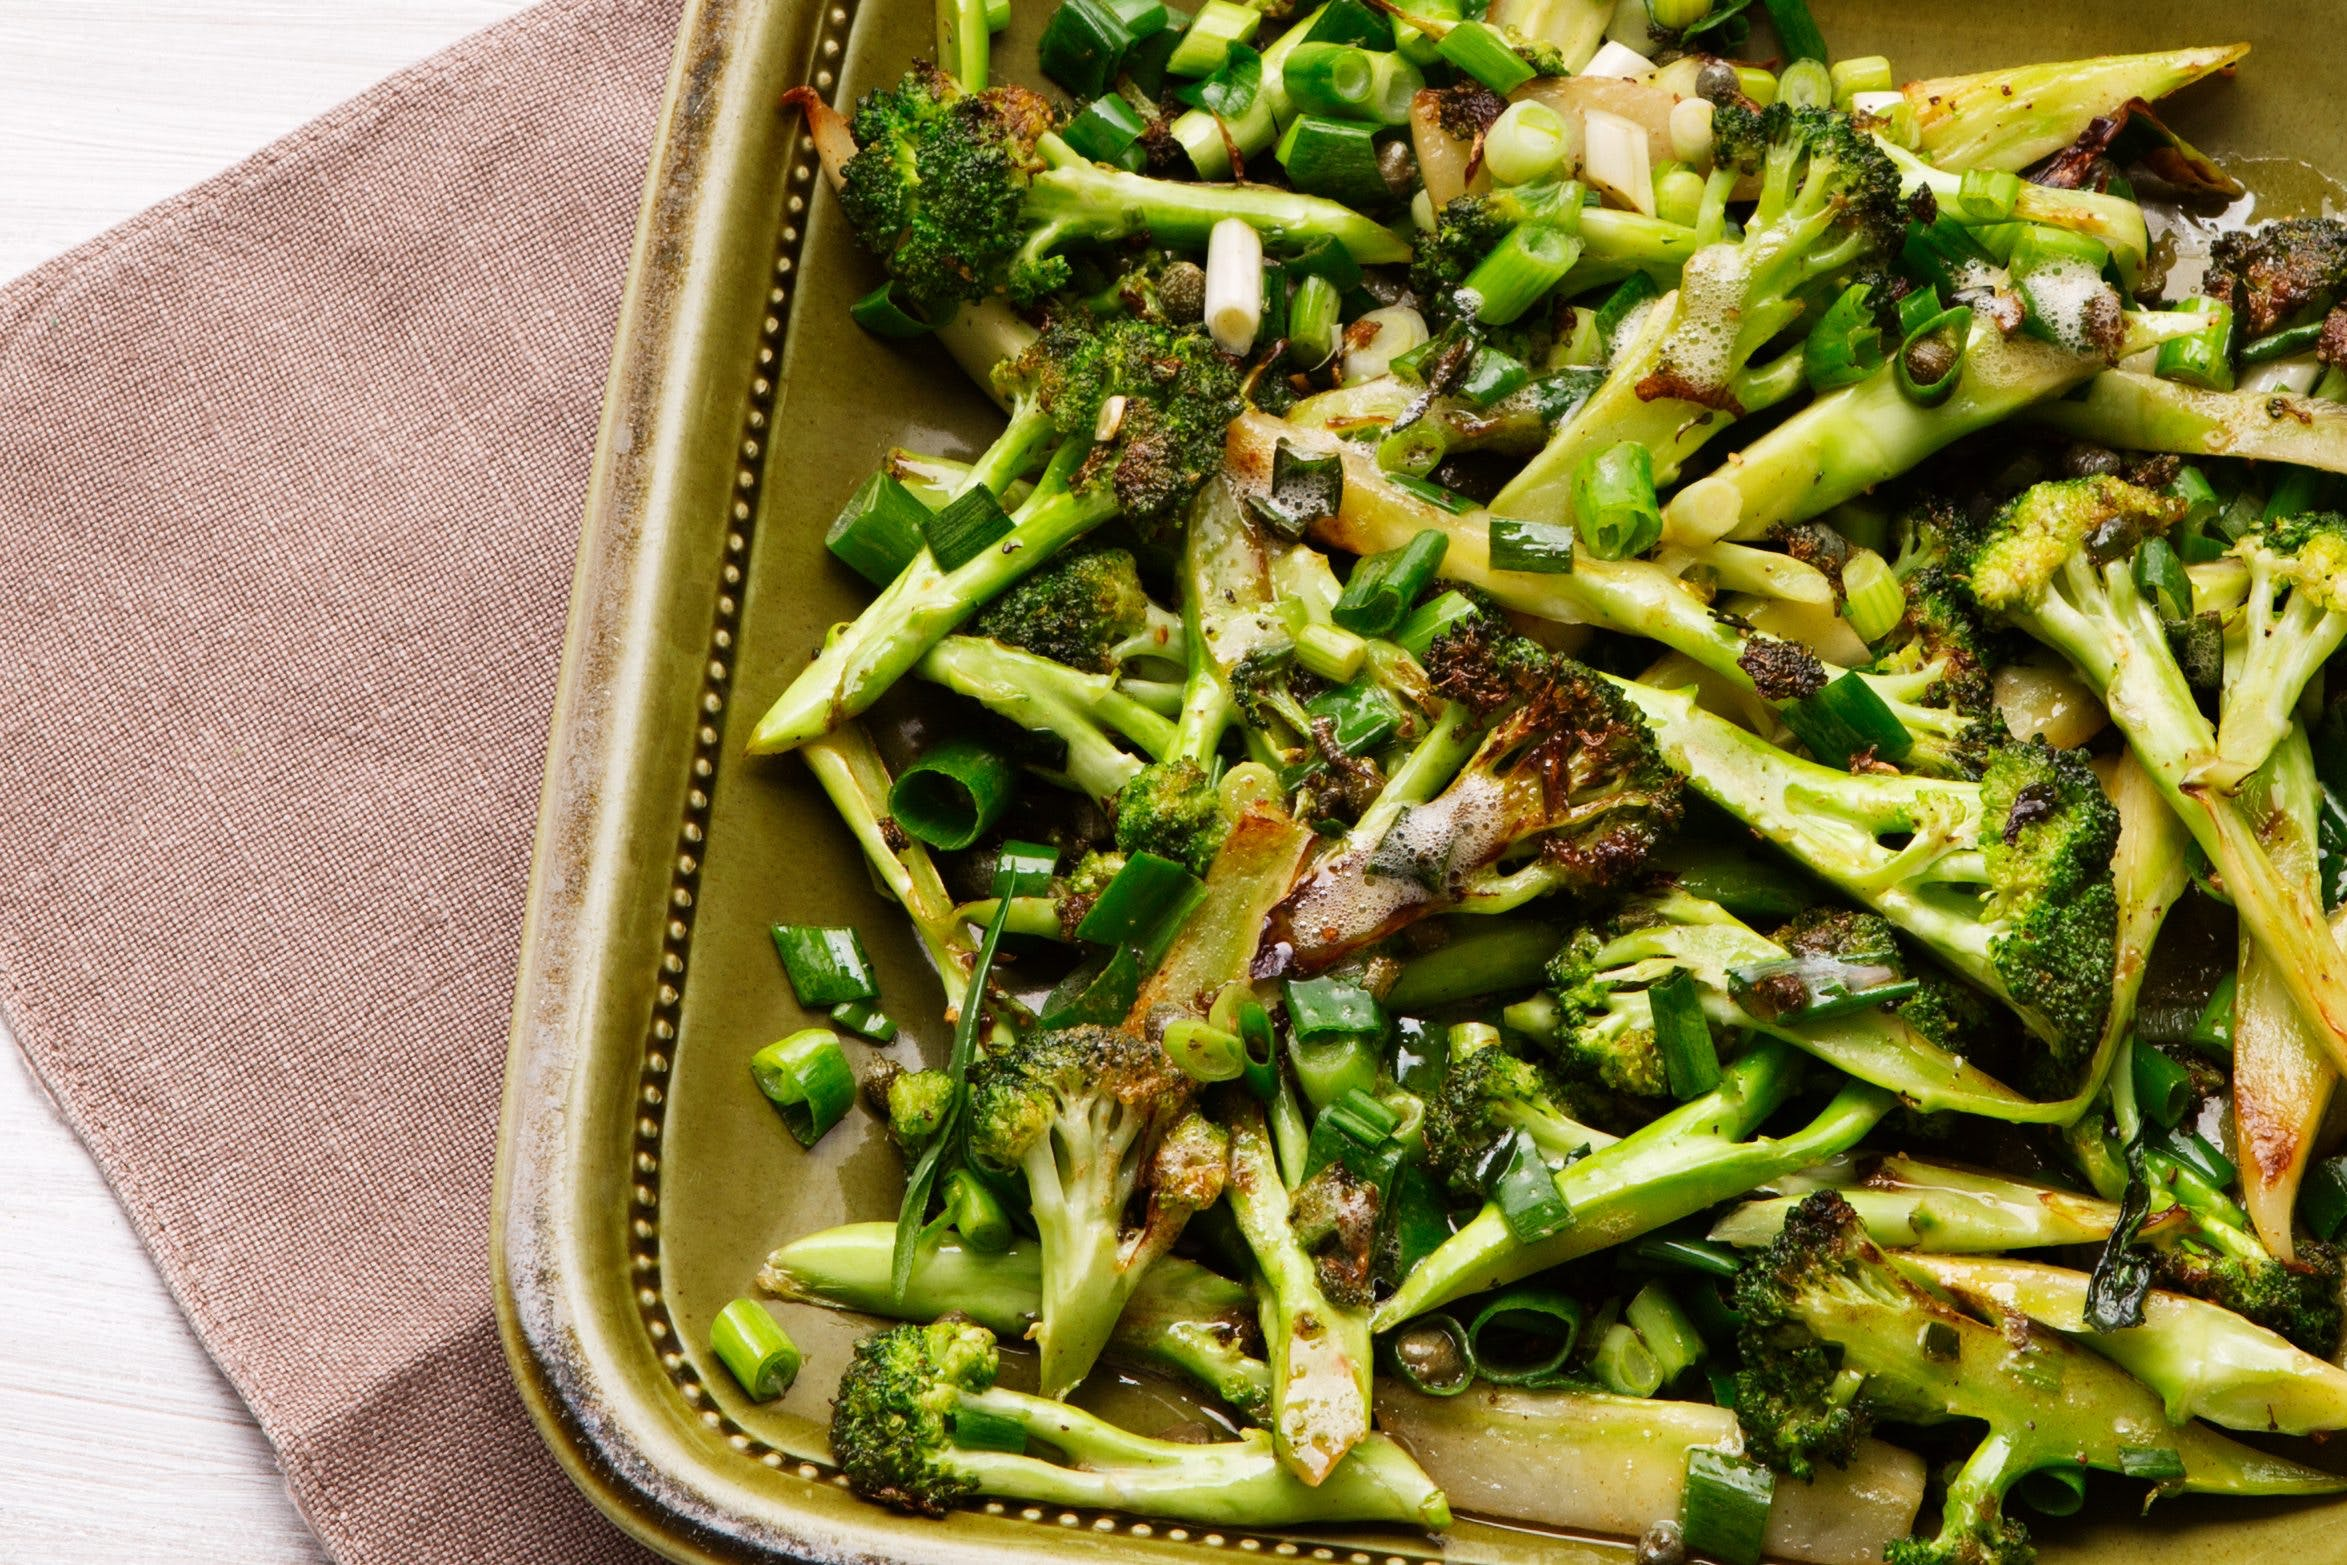 Butter-Fried Broccoli - A Fabulous Low-Carb Side Dish